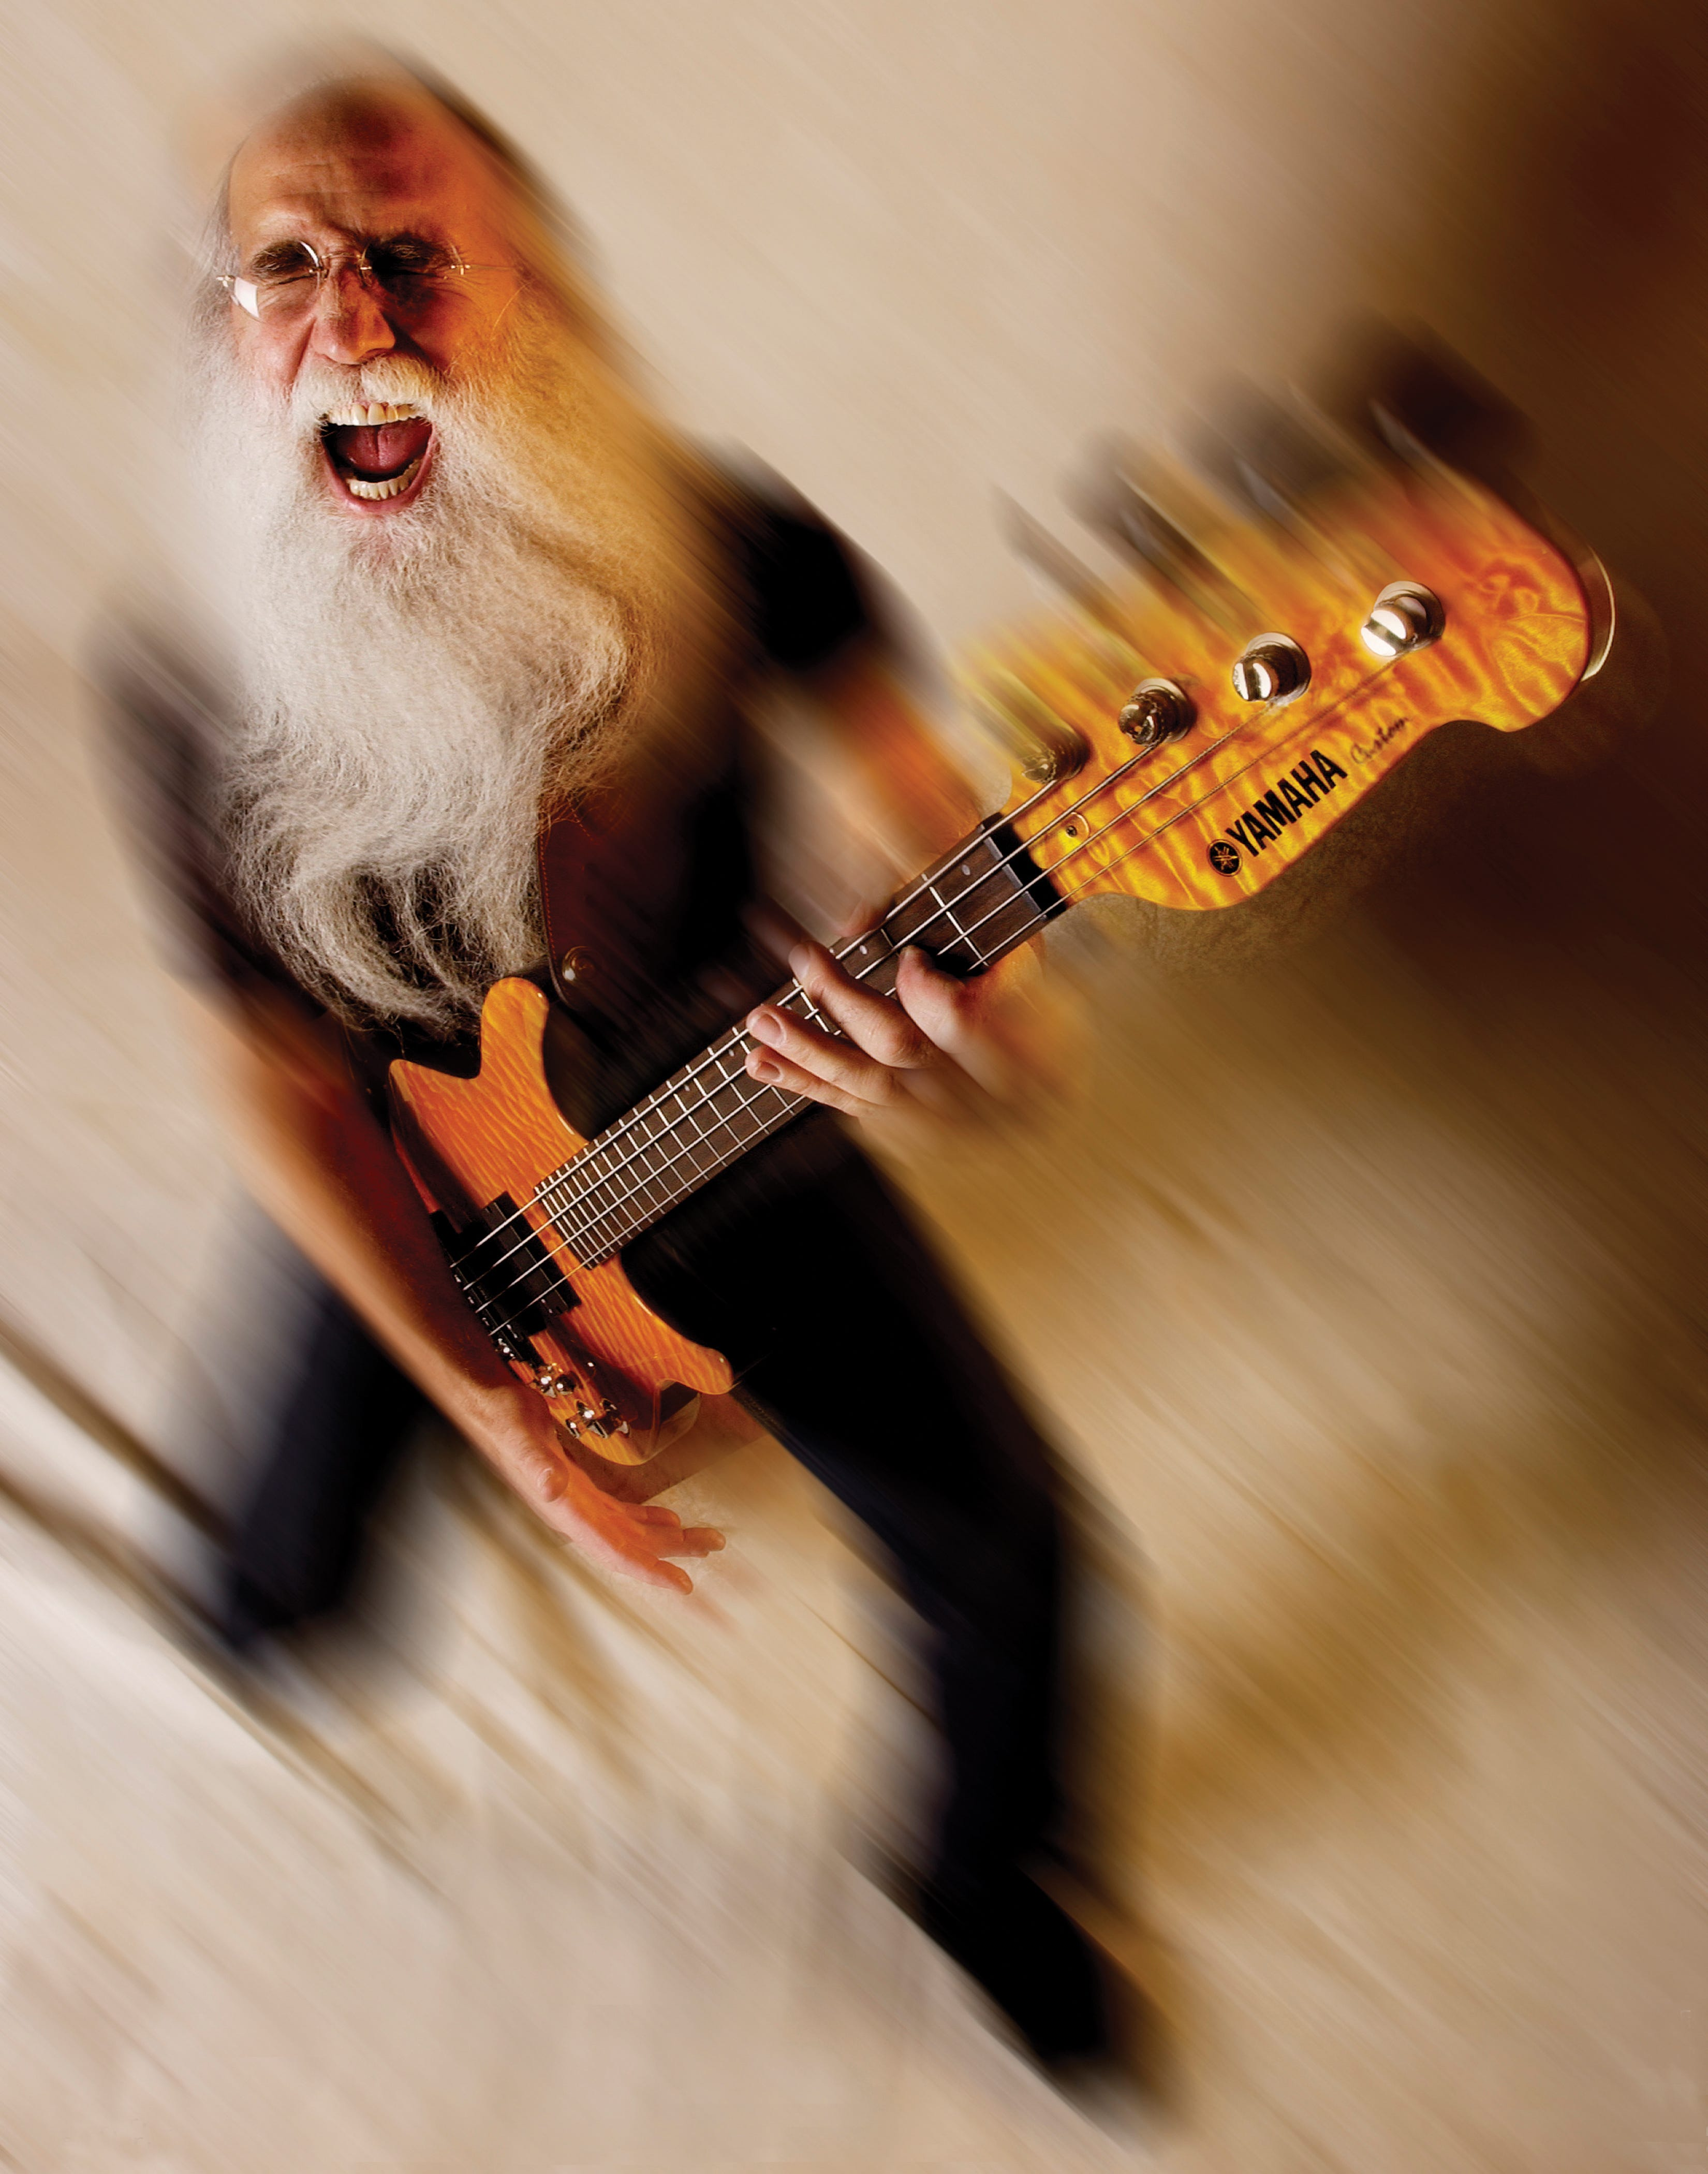 Milwaukee-born bass legend Leland Sklar keeps busy during pandemic with YouTube channel, new band, coffee table book